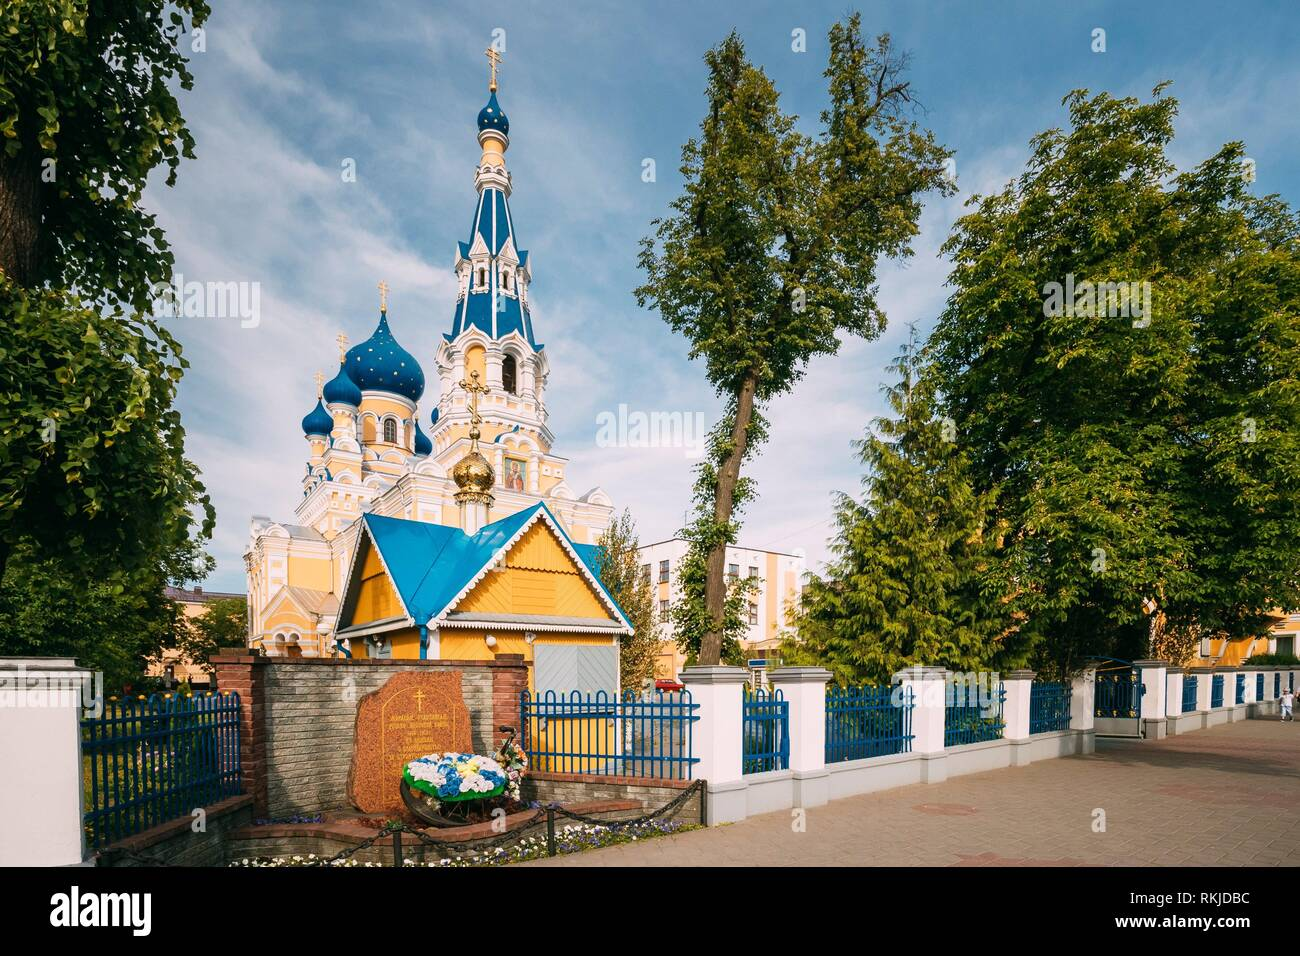 Brest, Belarus. St. Nicholas Cathedral In Sunny Summer Day. Famous Landmark Church Of St. Nicholas Or The Fraternal Church. - Stock Image